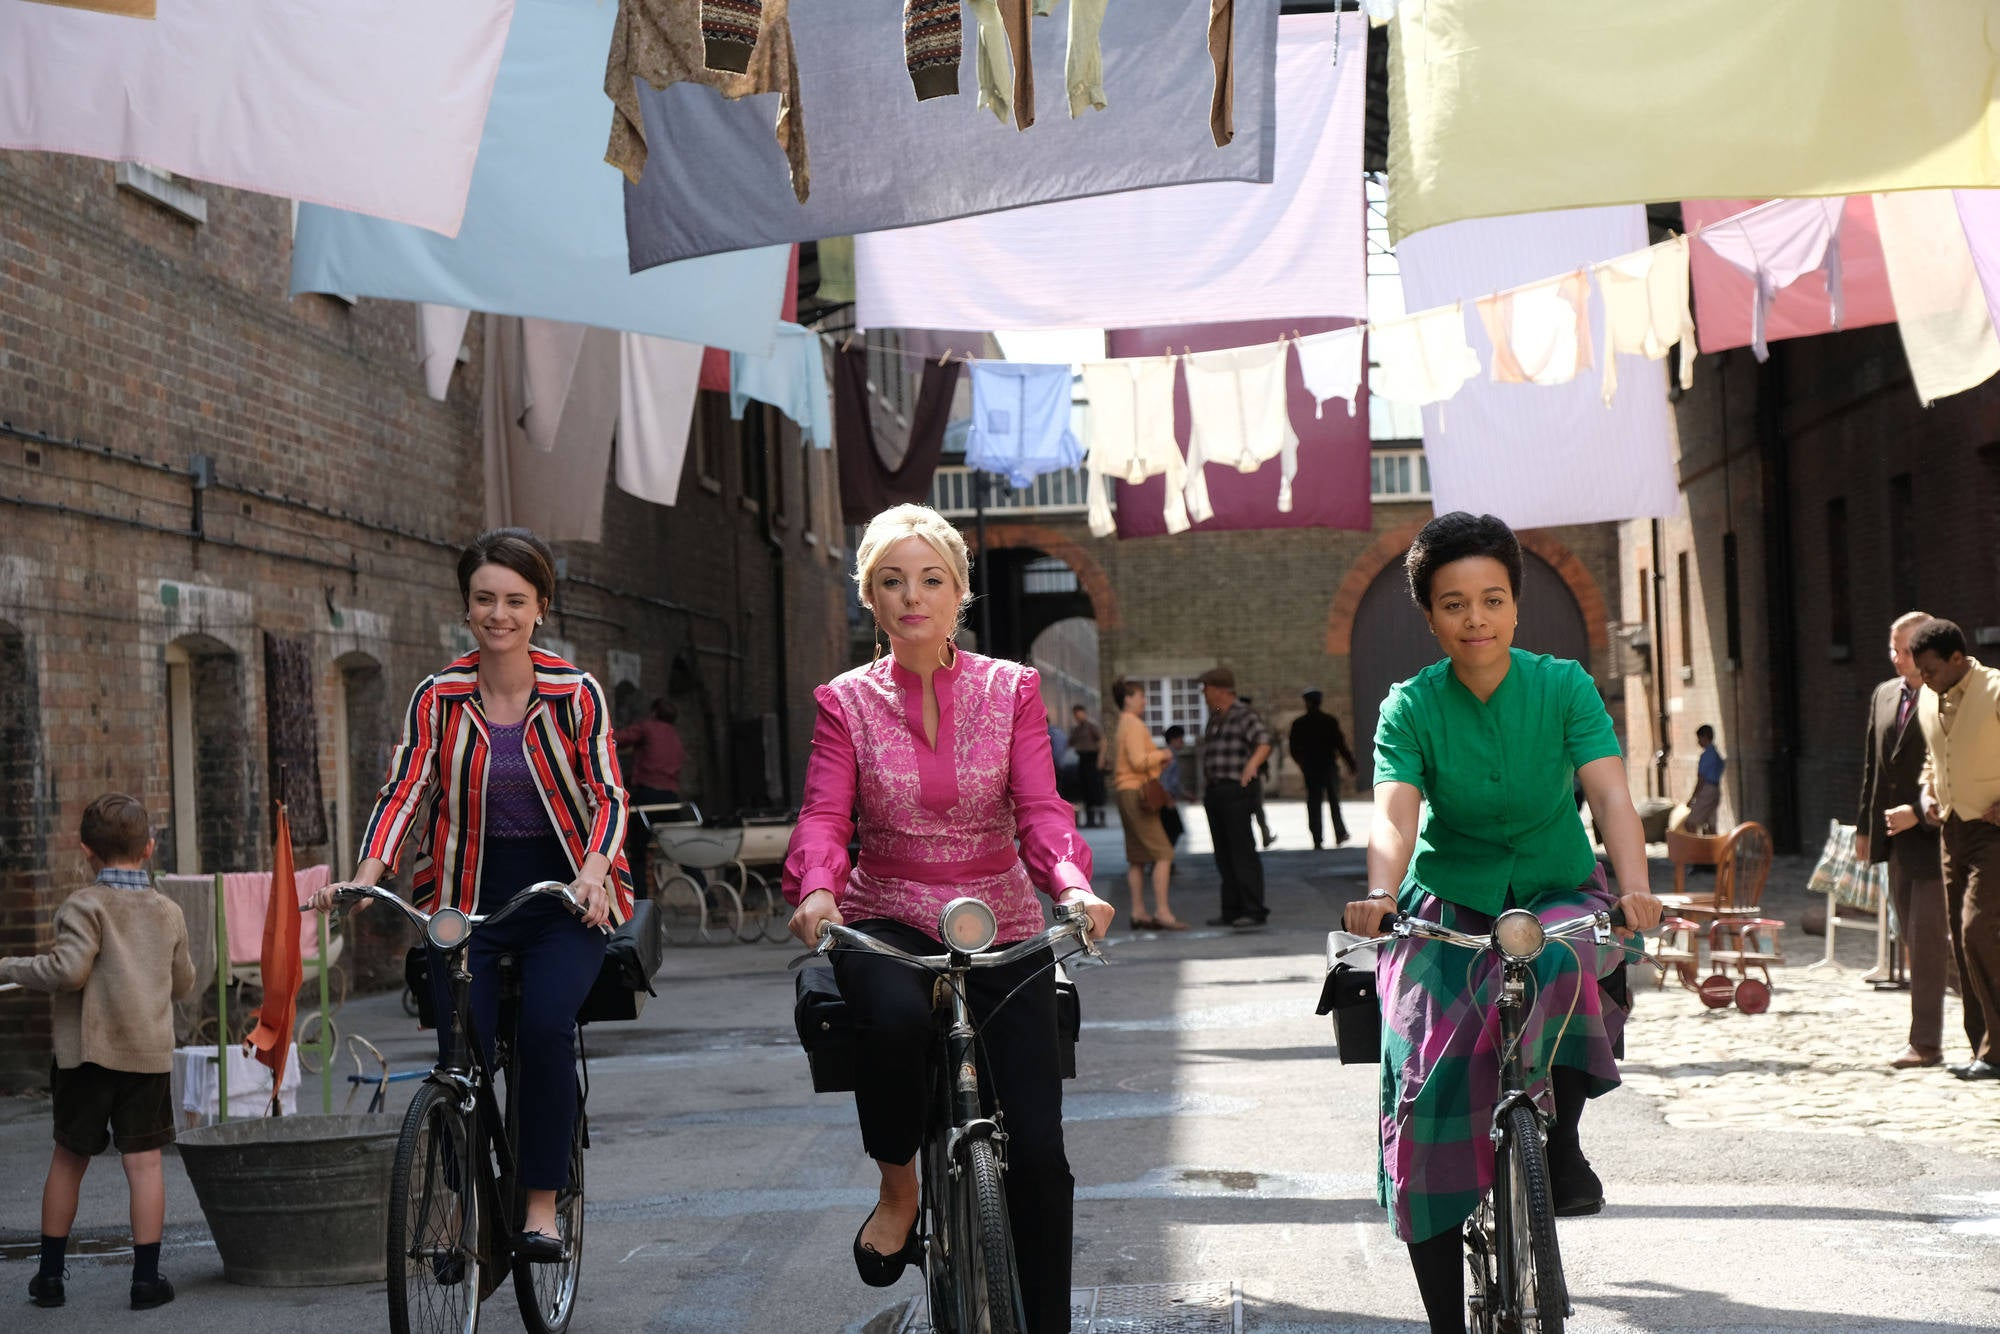 The BBC should treat abortion as a healthcare procedure, not just a plot point for Call the Midwife